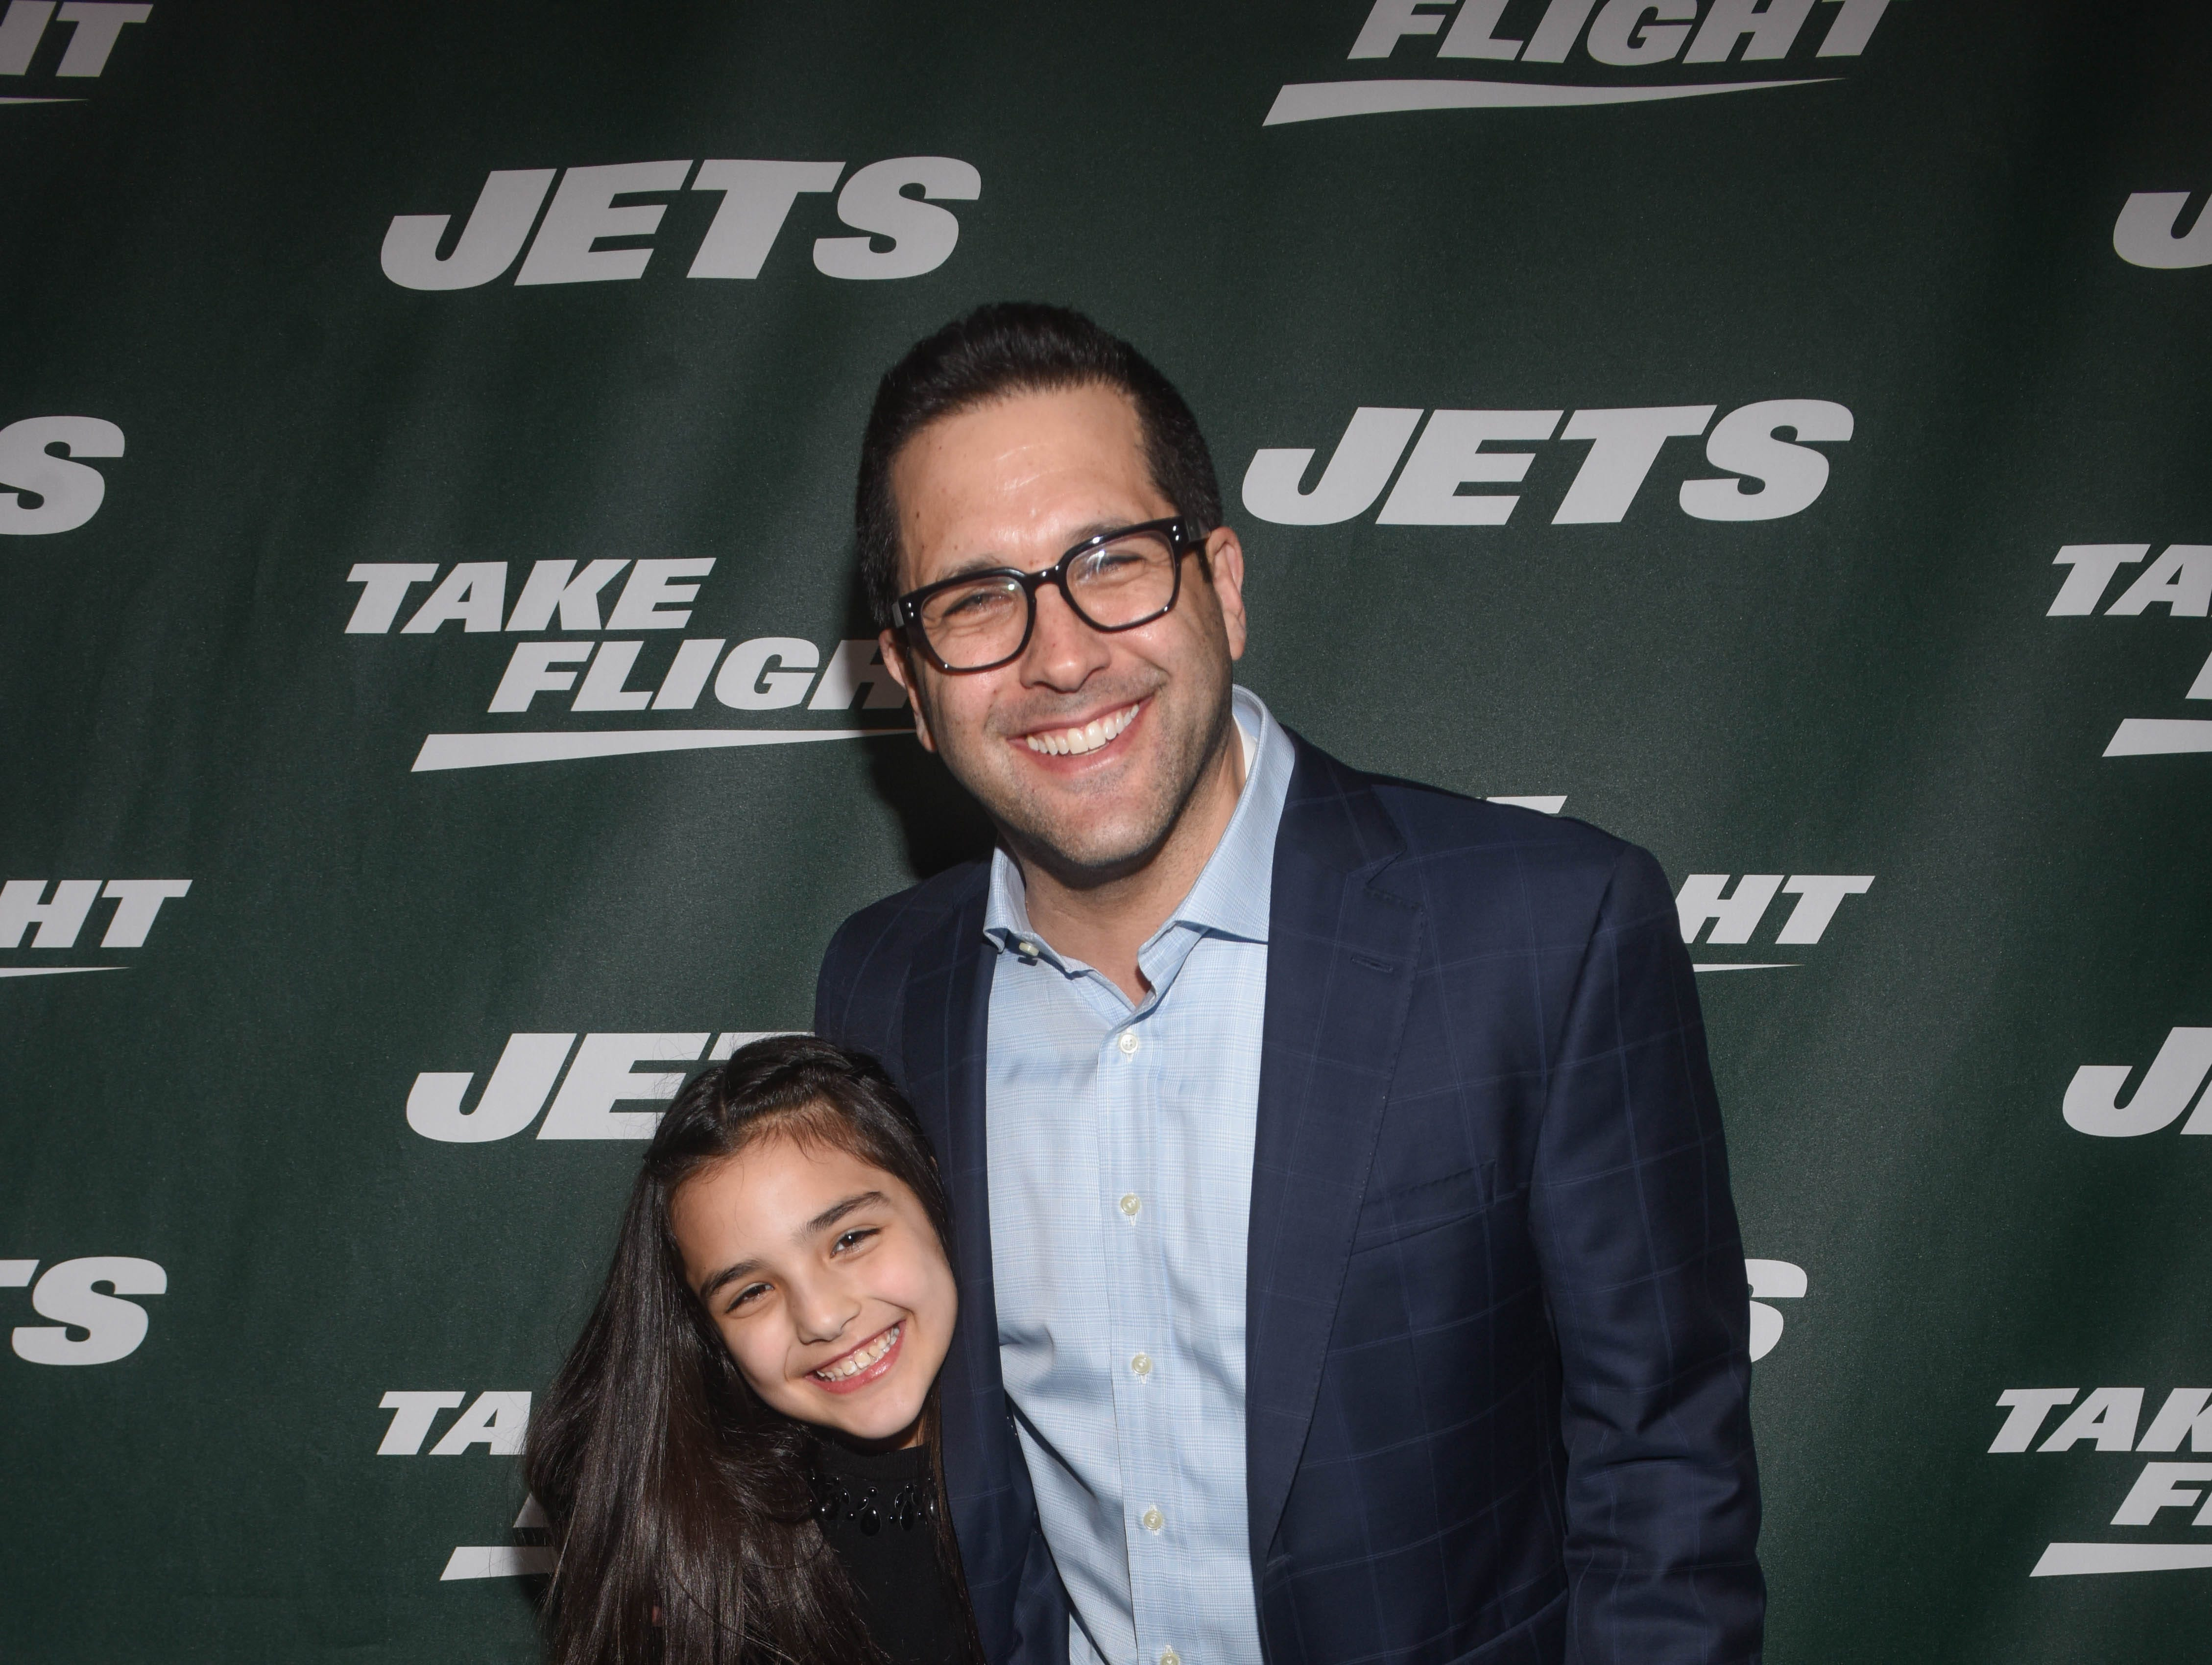 Adam Schefter and Dylan Schefter. The NY Jets unveiled their new football uniforms with an event hosted by JB Smoove at Gotham Hall in New York. 04/05/2019